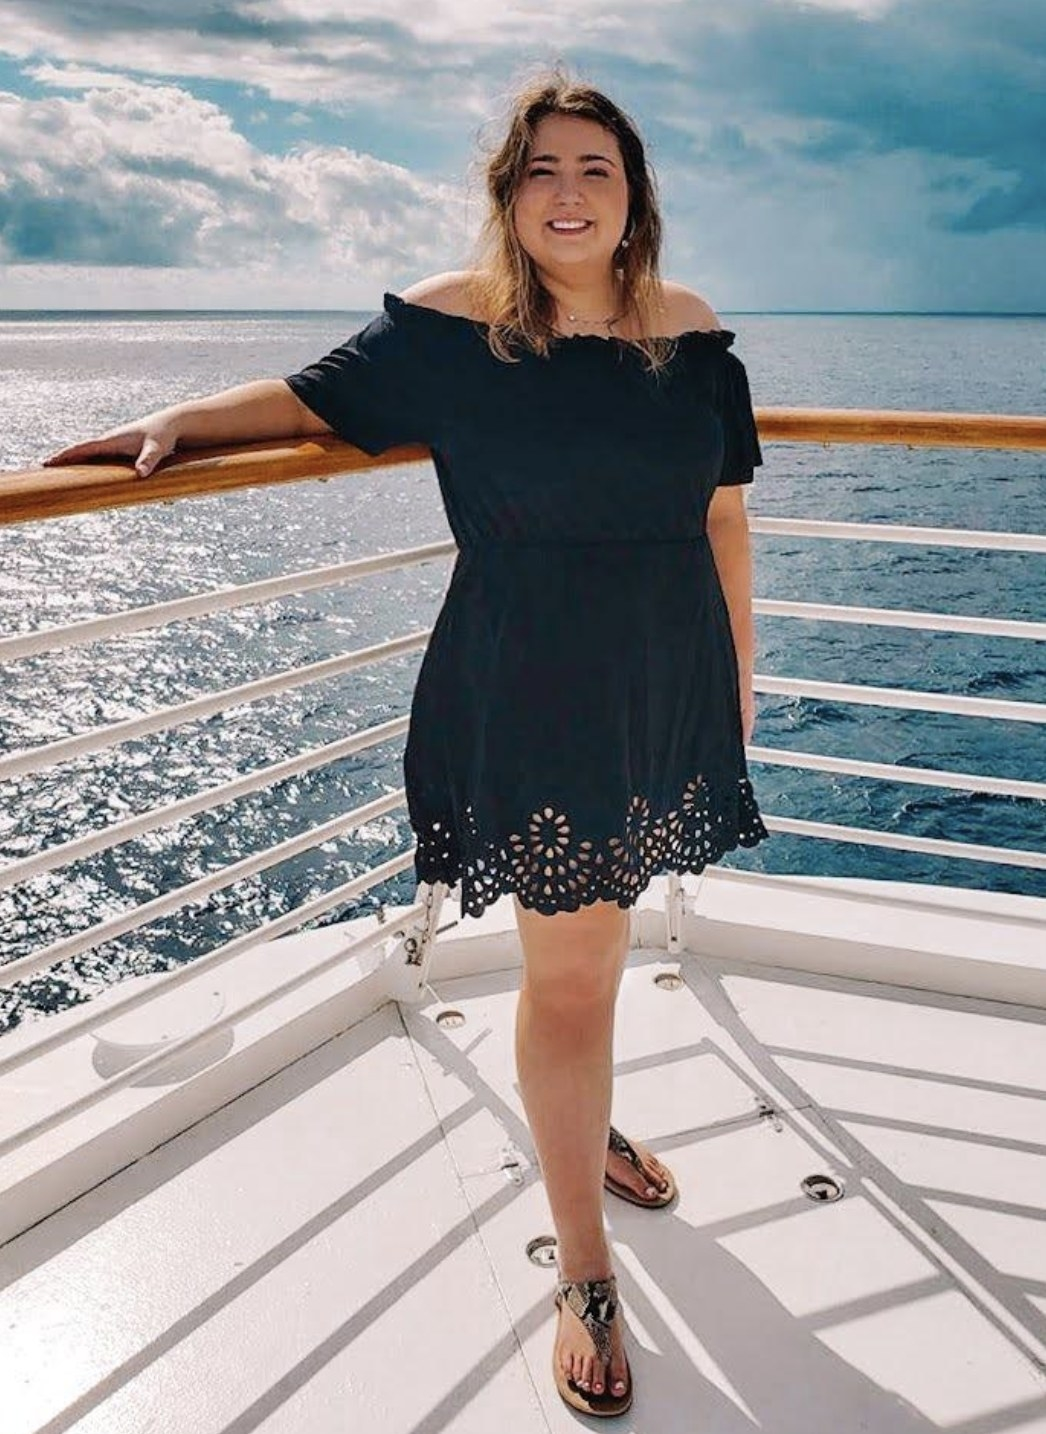 a model wearing the dress in black with sandals on a boat